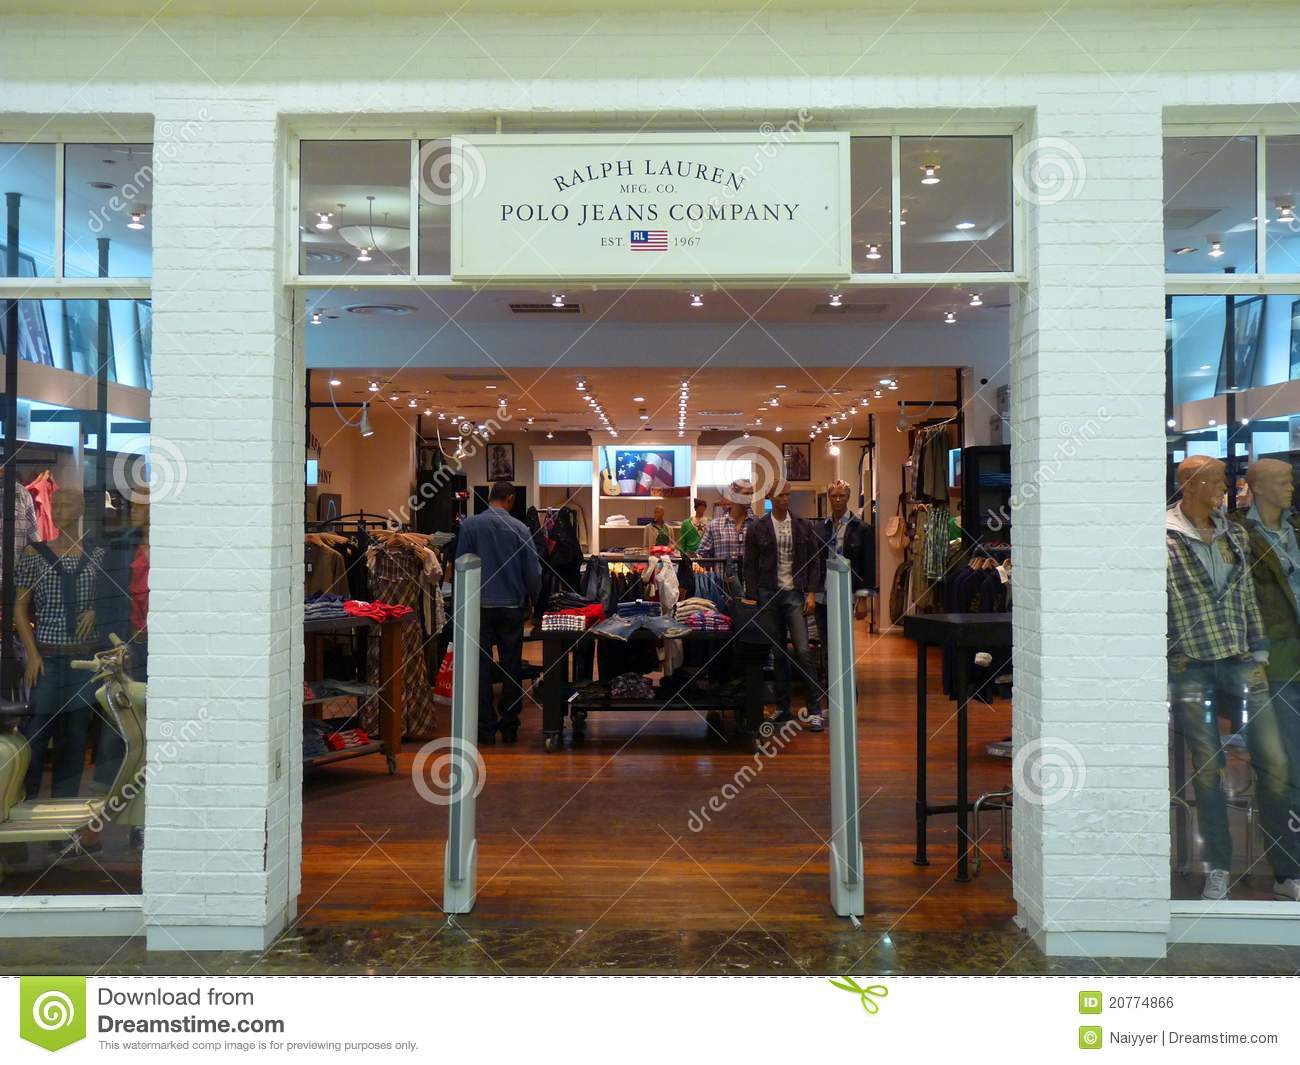 Ralph Lauren Corporation is a global leader the design, marketing, and distribution of premium lifestyle products and other licenses product categories. The company began with men's ties, although it is the cotton mesh Polo shirt, introduced five years later by Mr. Location: International Dr Suite 1E01, Orlando, , FL.